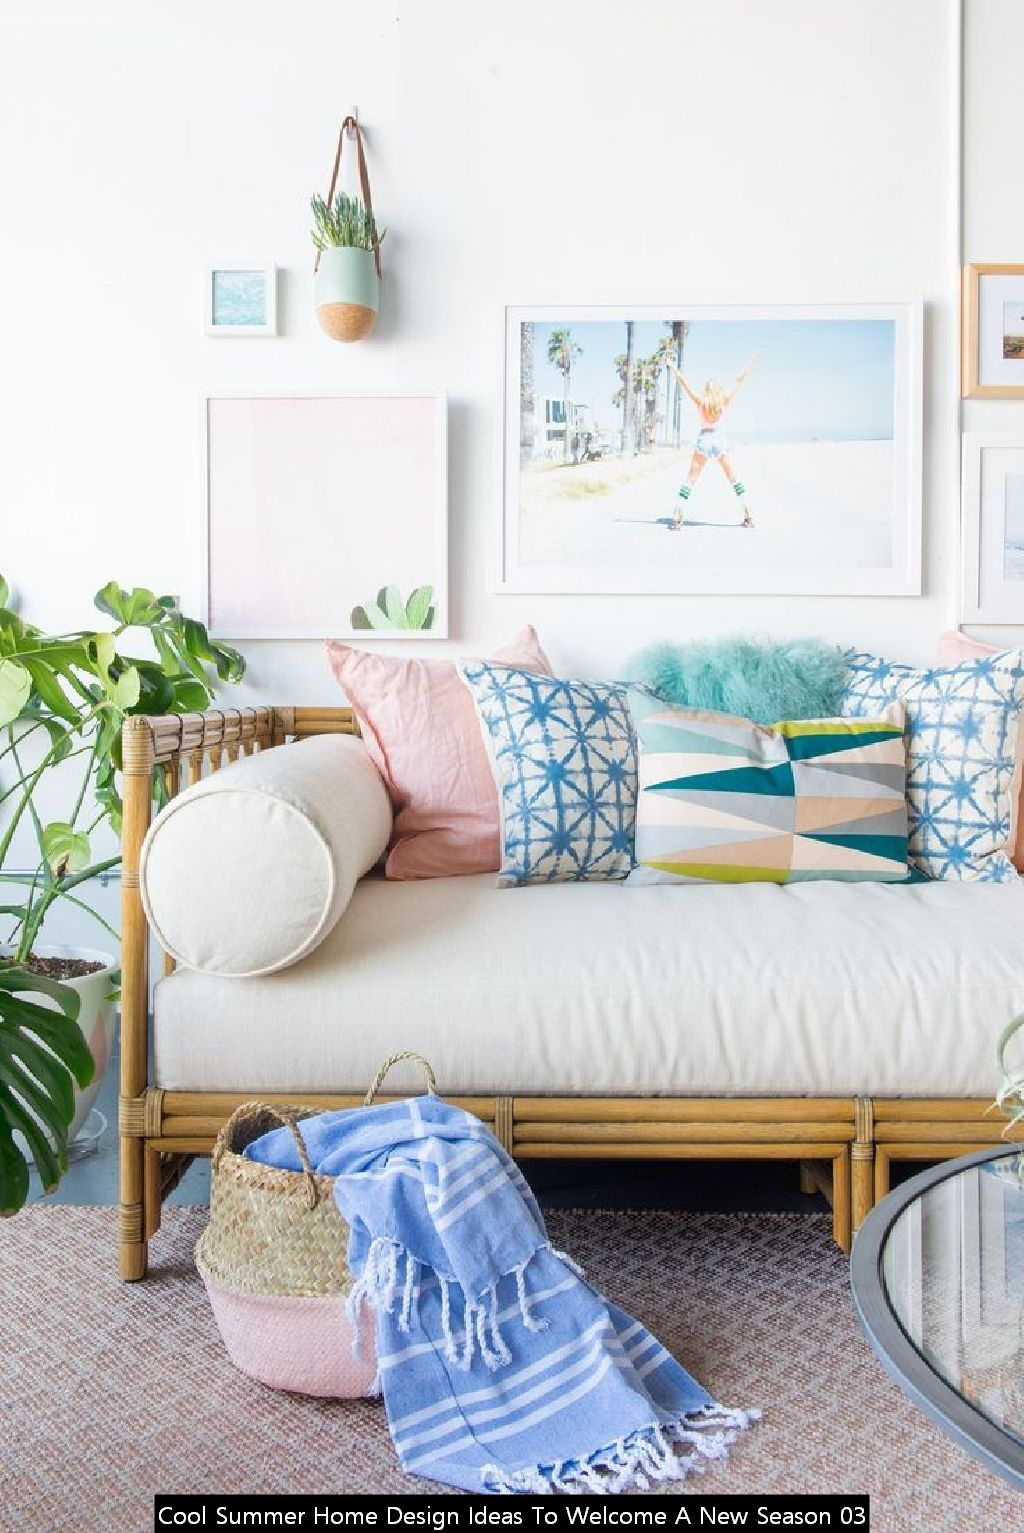 Cool Summer Home Design Ideas To Welcome A New Season 03